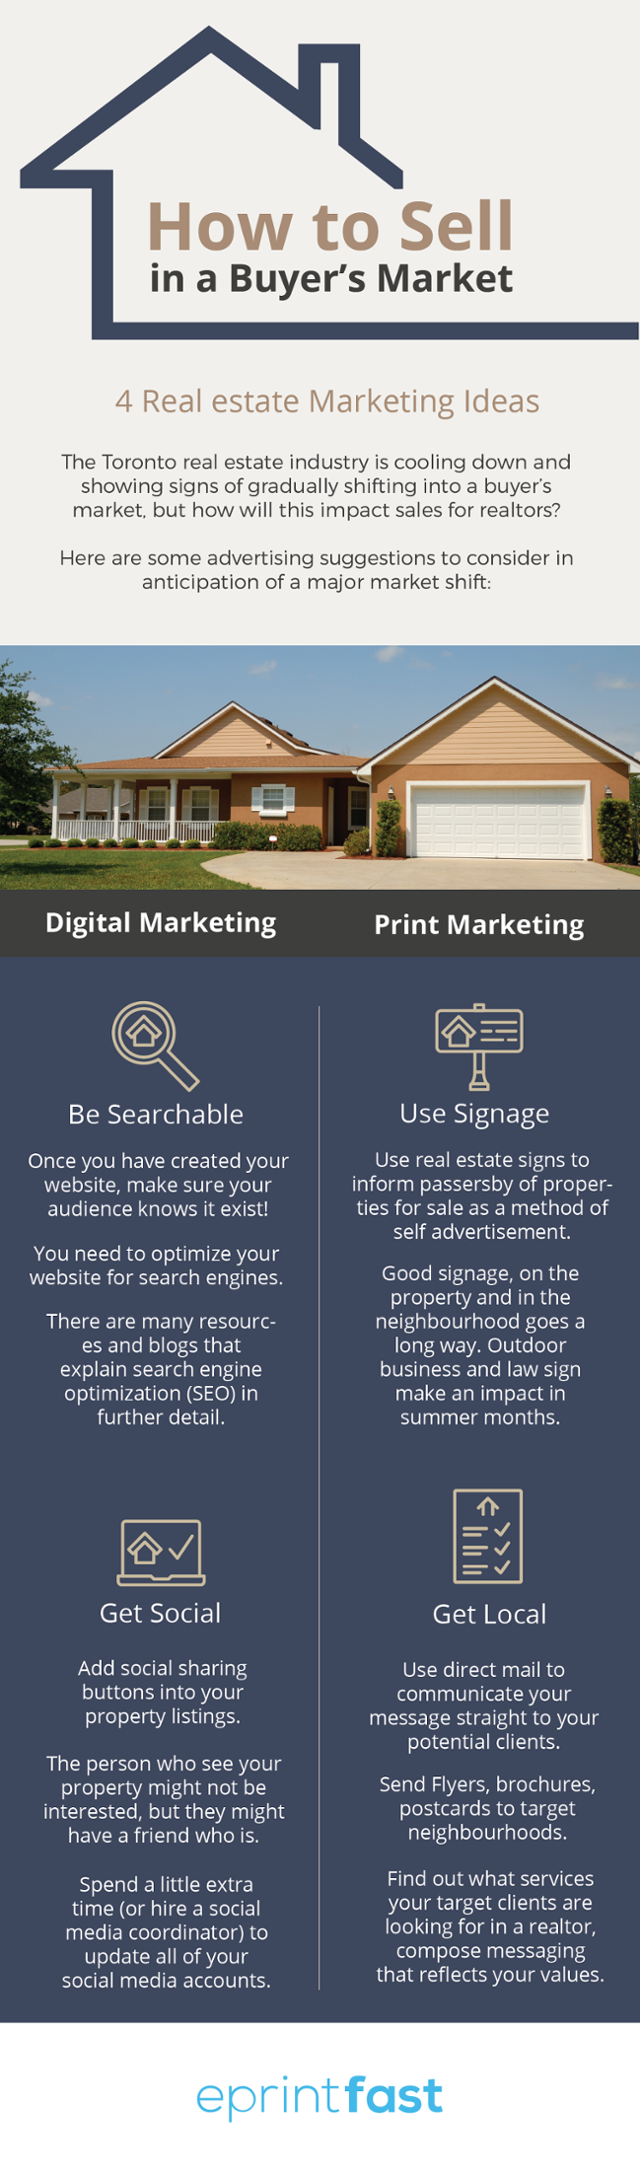 How to Sell in a Buyer's Market: Real Estate Marketing Ideas